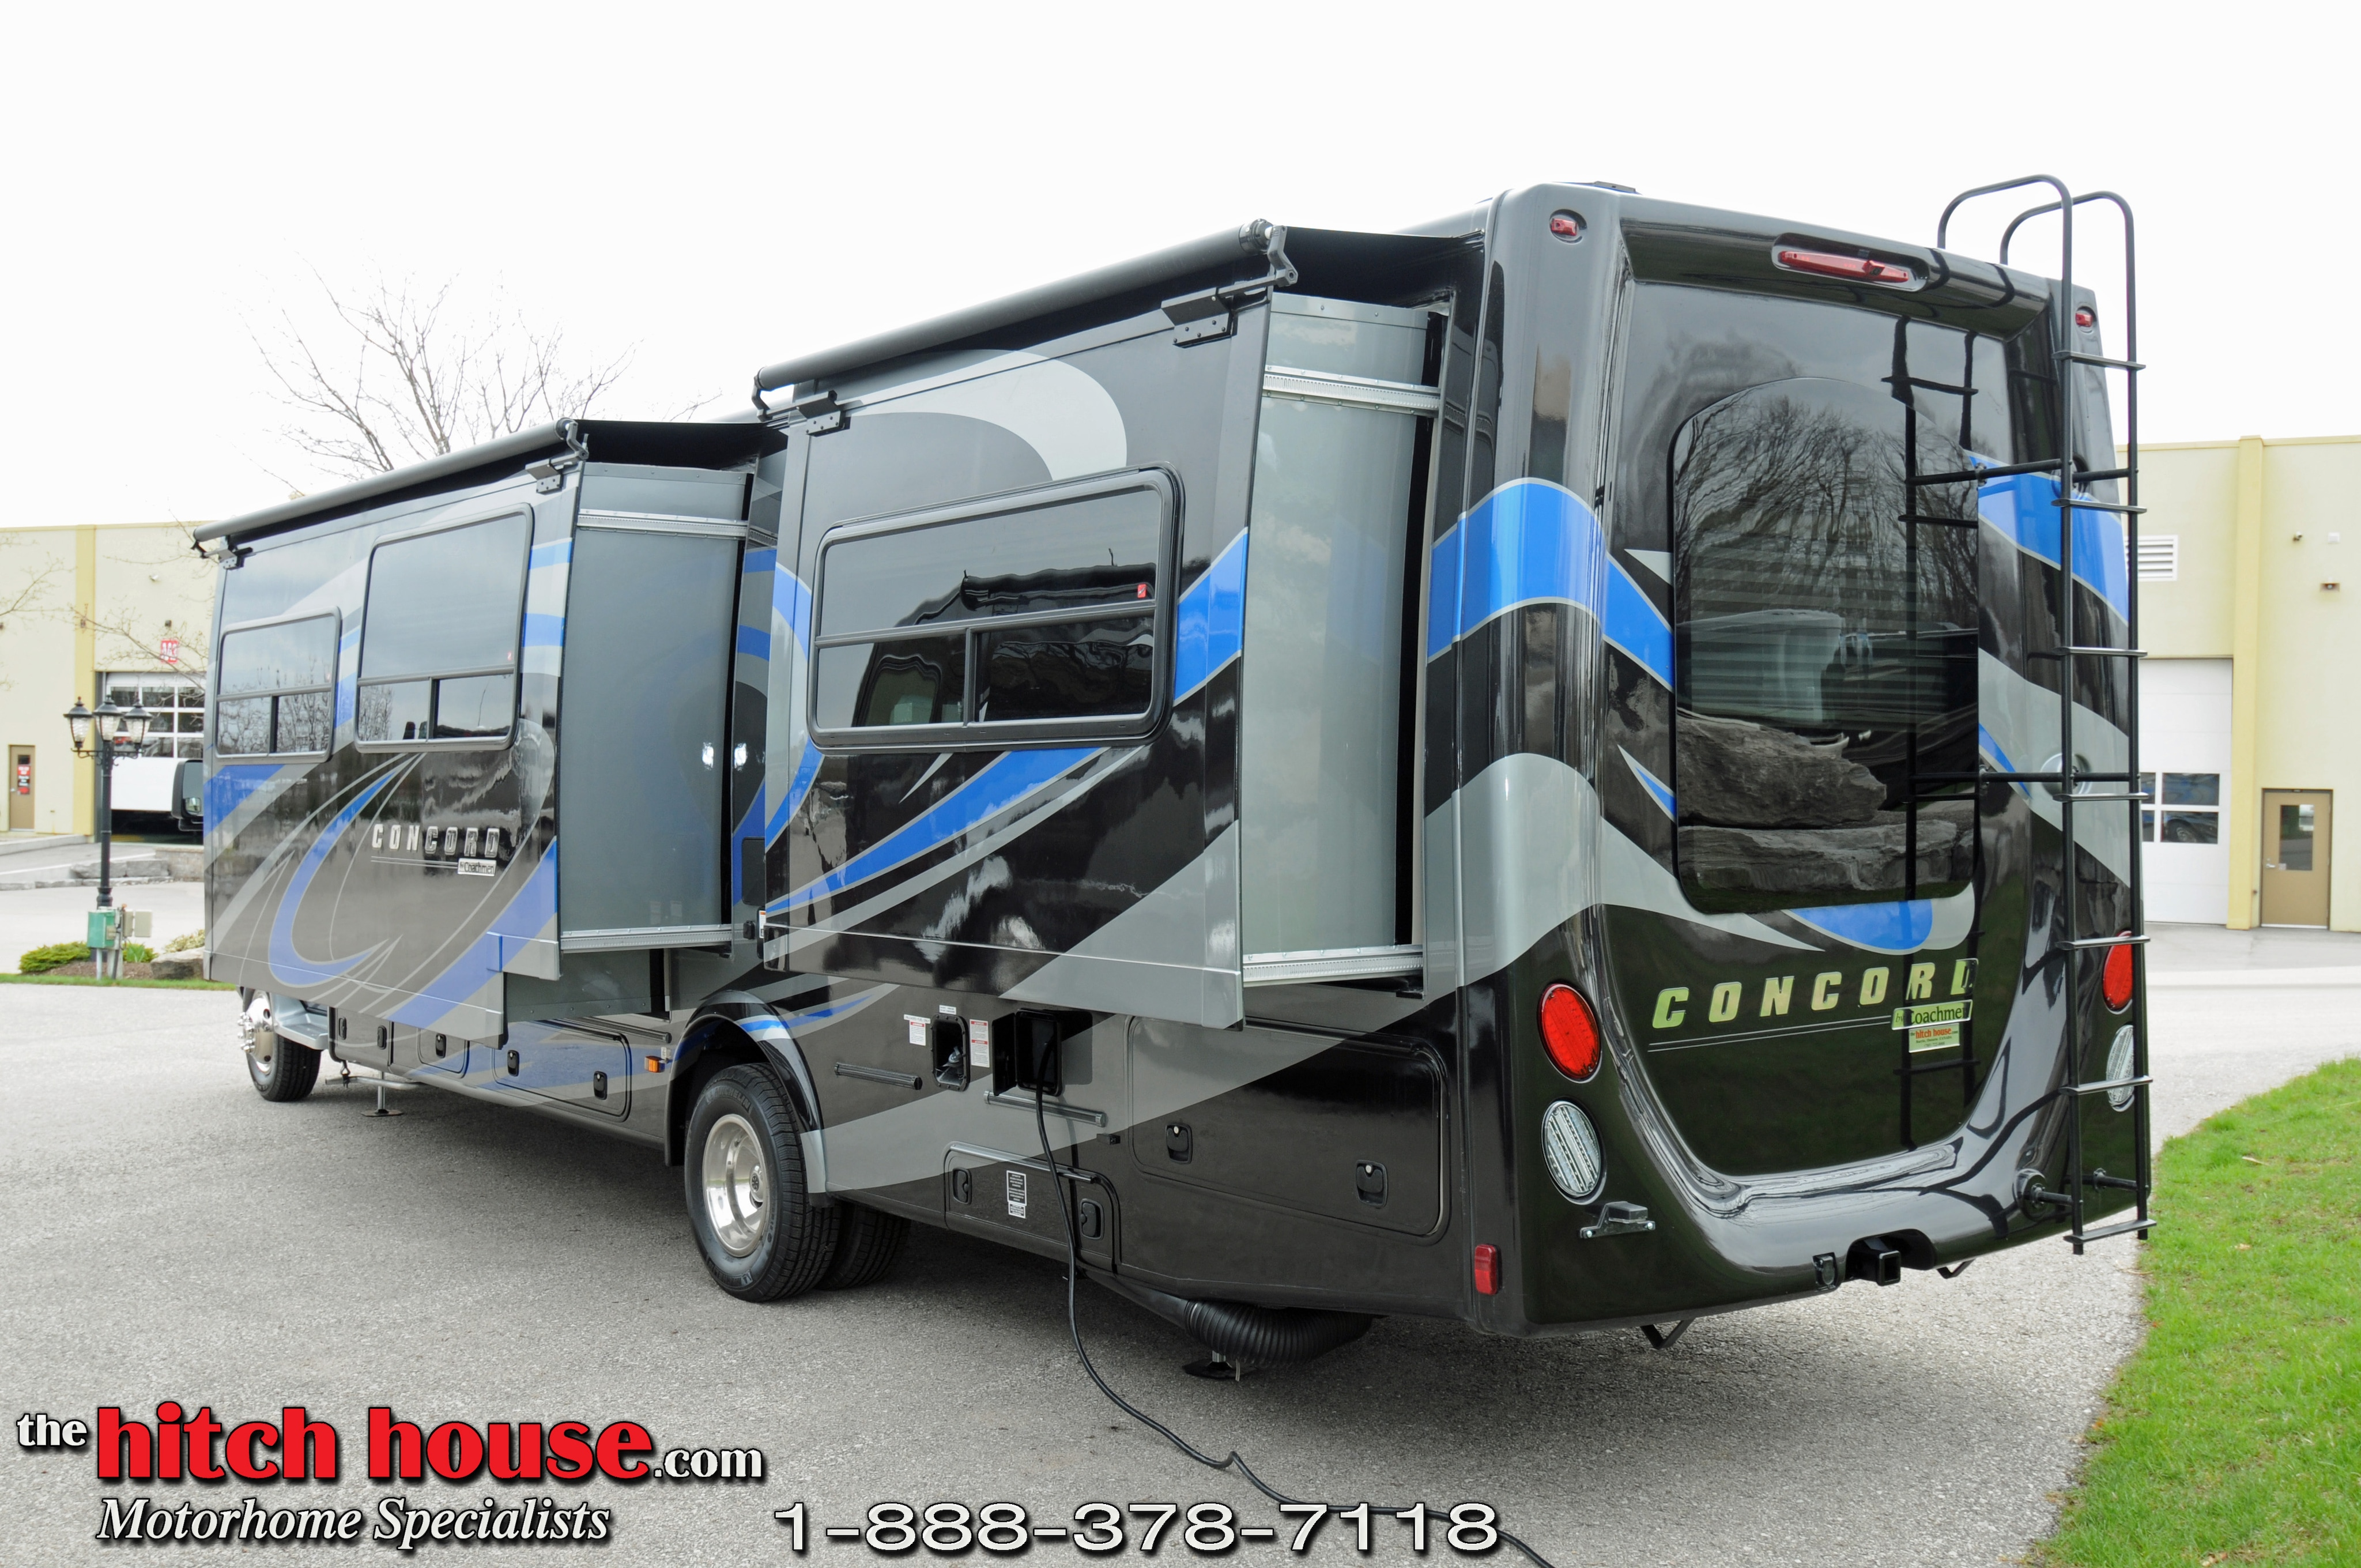 New 2018 Coachmen Concord 300ds For Sale In Ontario The